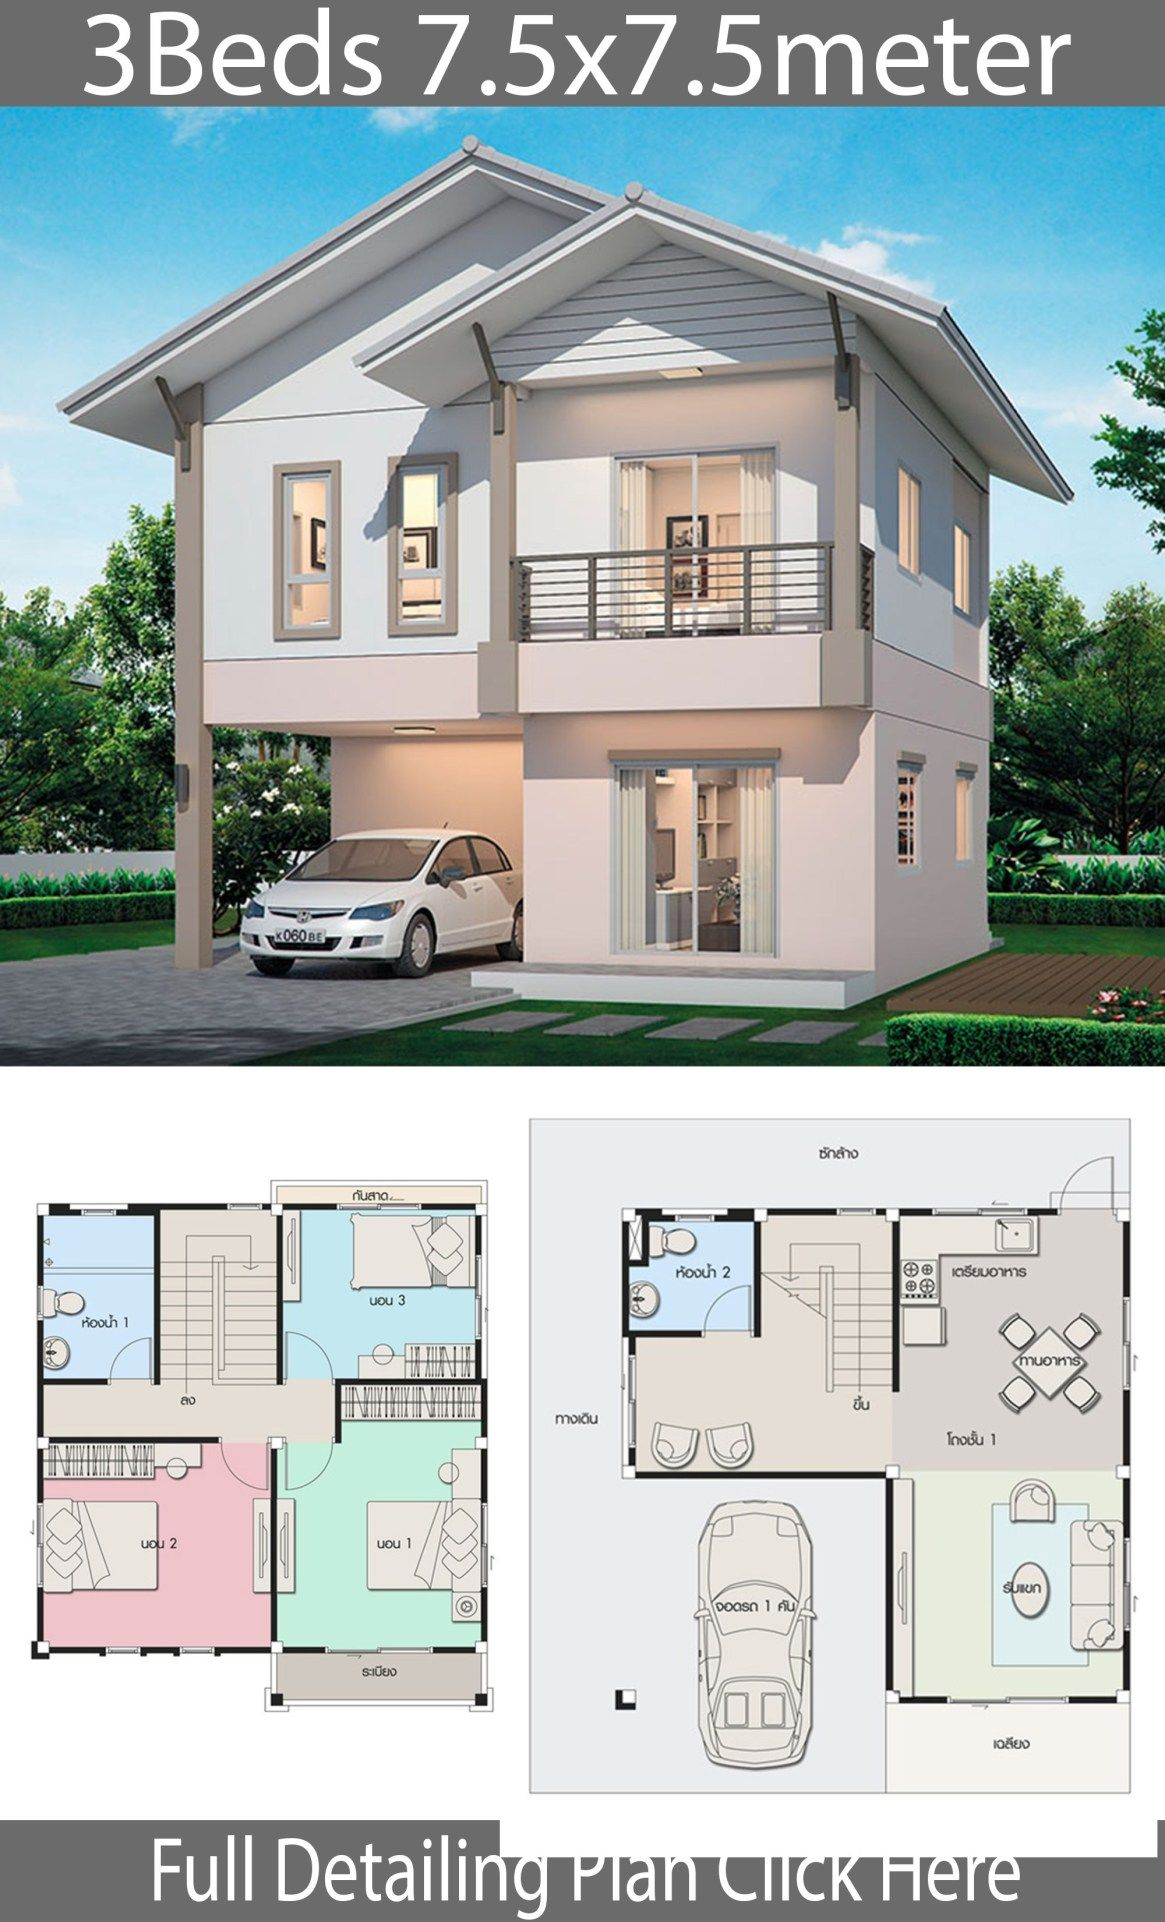 Pin By Planner 5d On My Dream Home With Layout Plan Sims House Plans Sims House Design Architectural House Plans